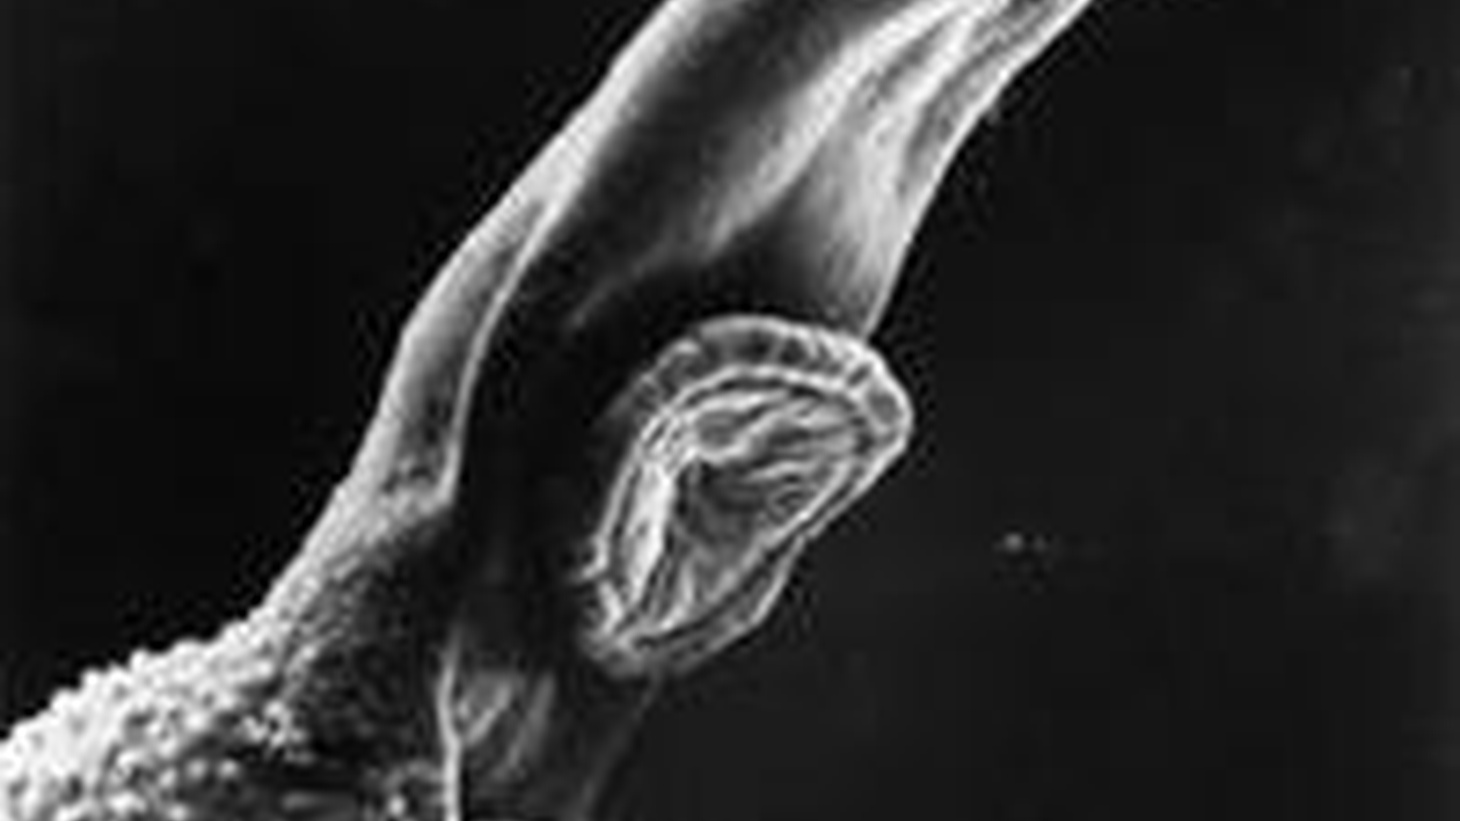 What's gotten into you? In this hour, Radiolab uncovers a world full of parasites.